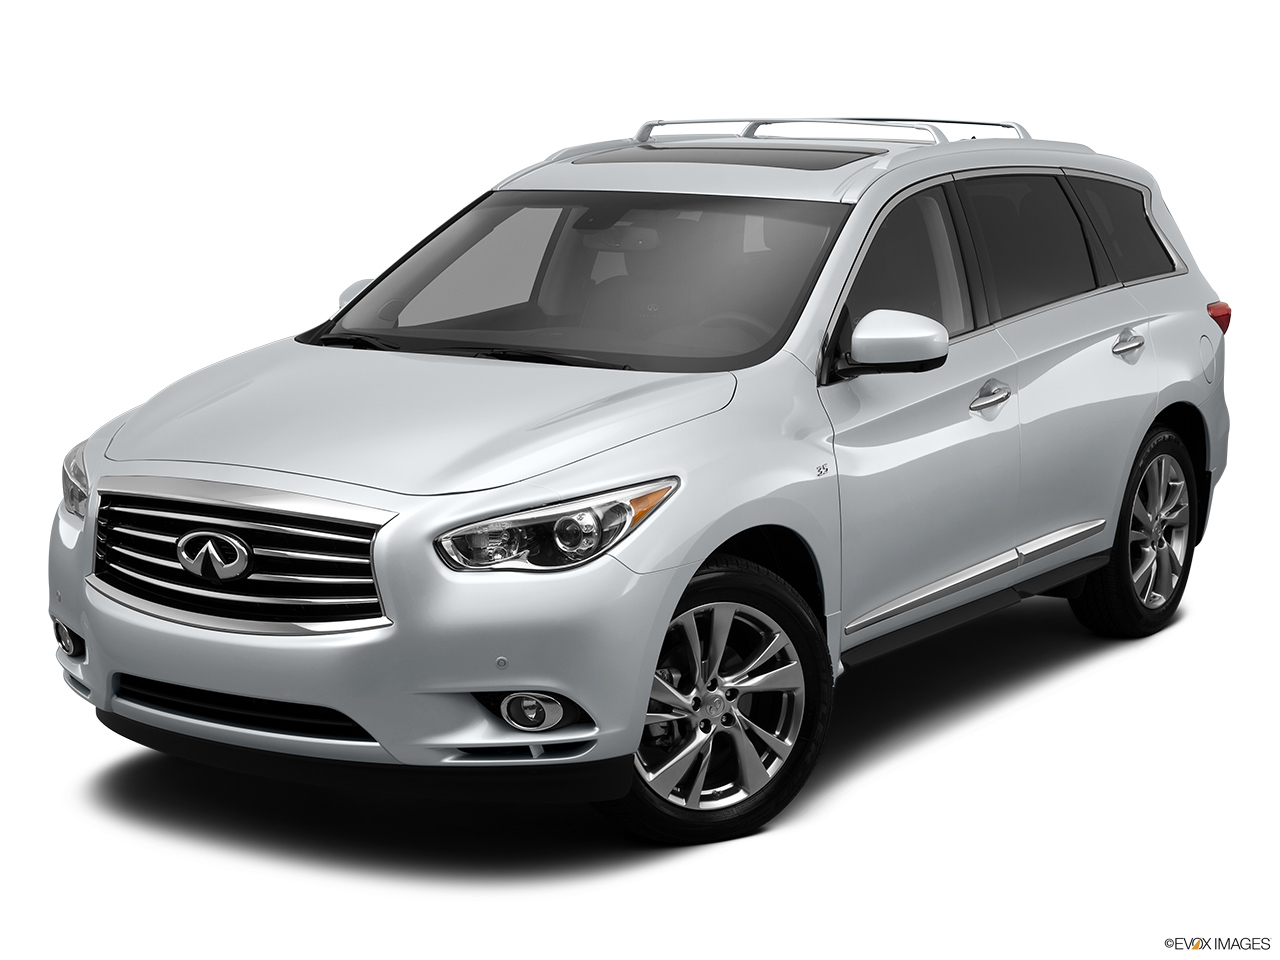 2014 infiniti qx60 awd. Black Bedroom Furniture Sets. Home Design Ideas